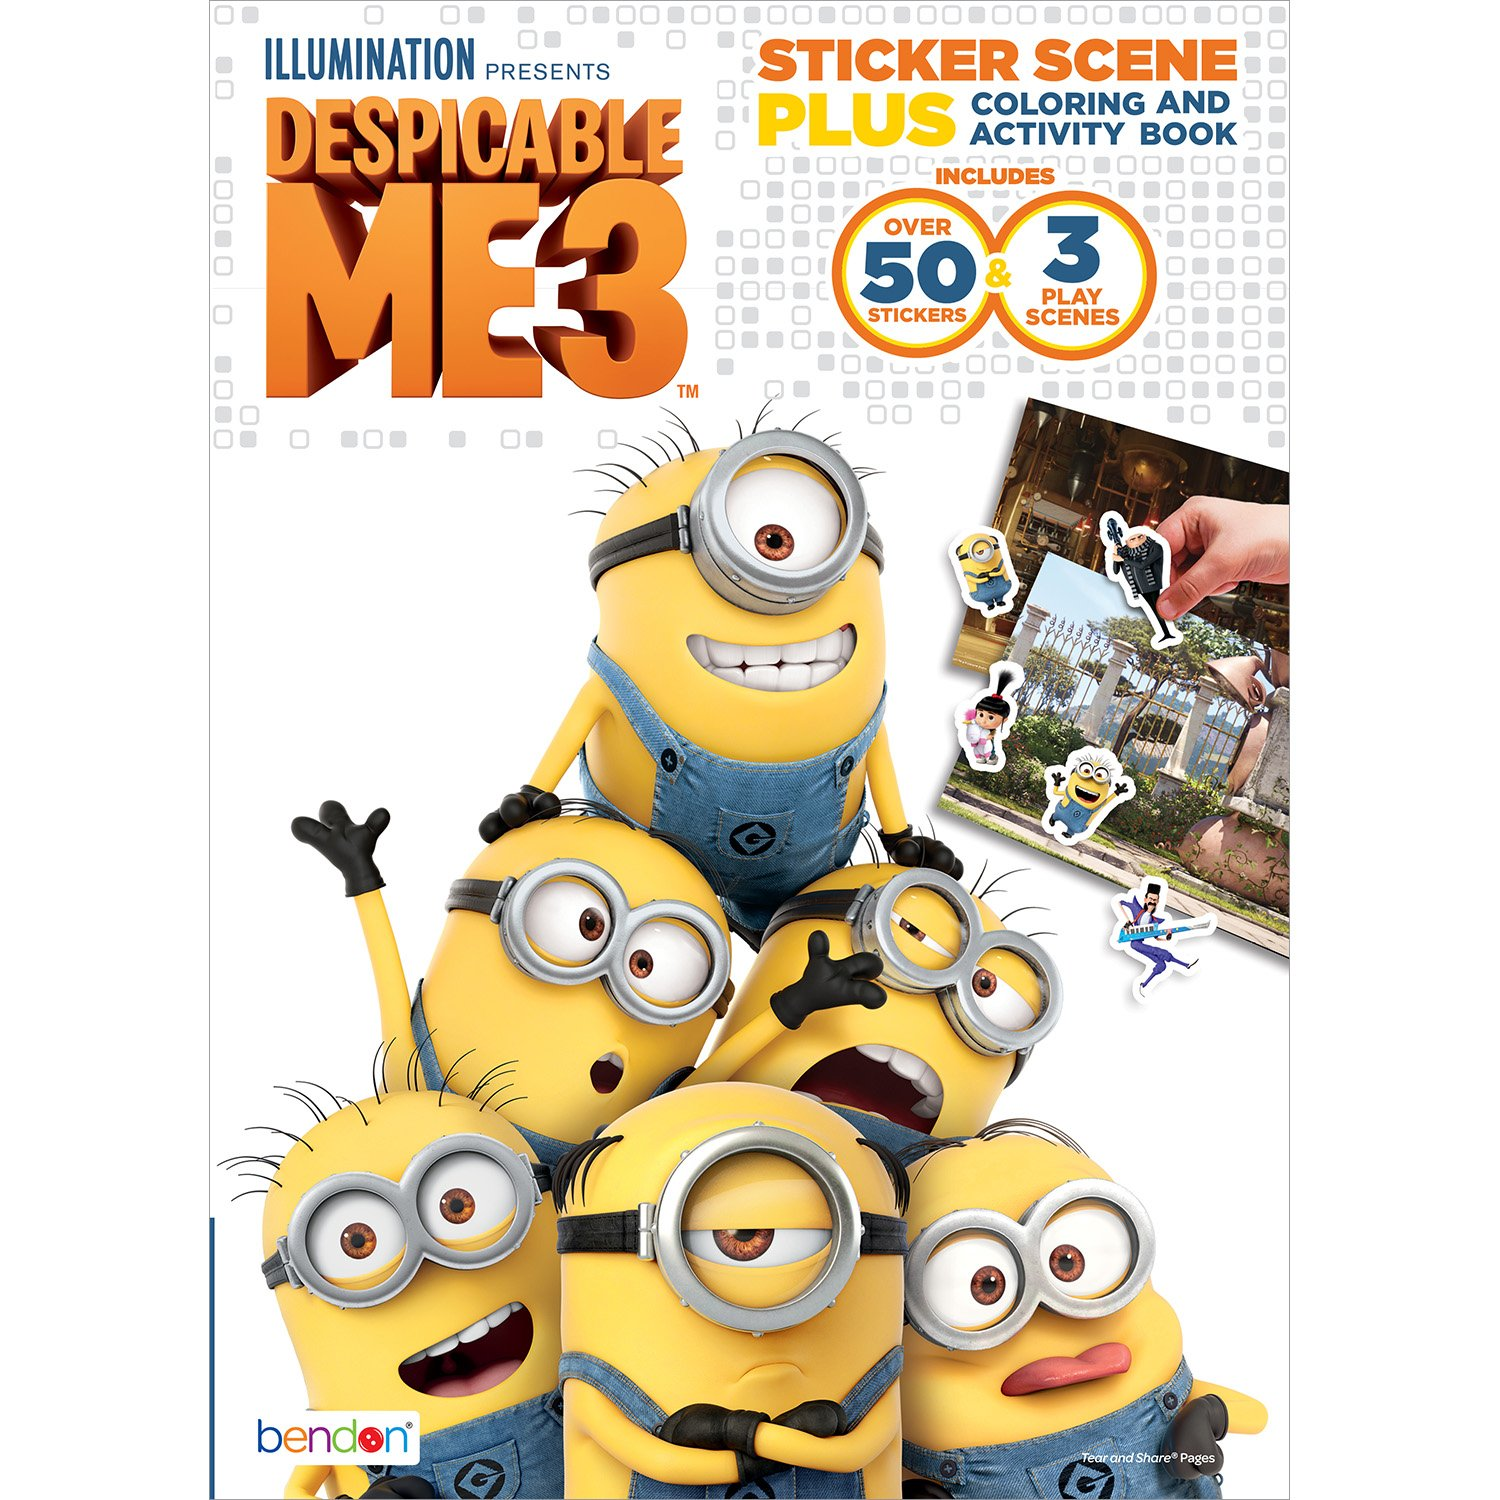 Amazon Bendon Despicable Me 3 Sticker Scene Plus Activity